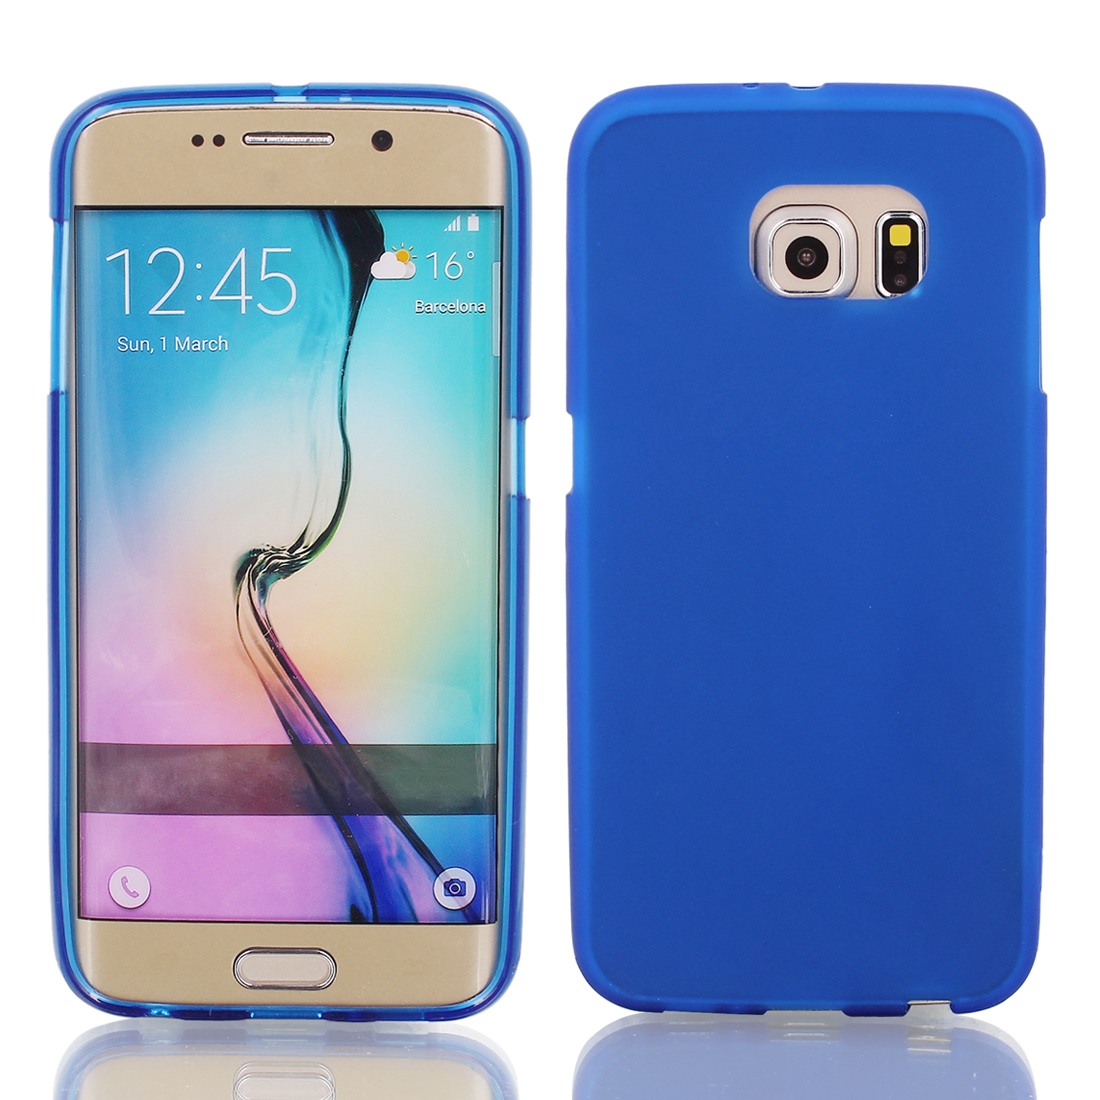 Blue Silicone Back Case Cover w Protective Film Wiper for S6/G925